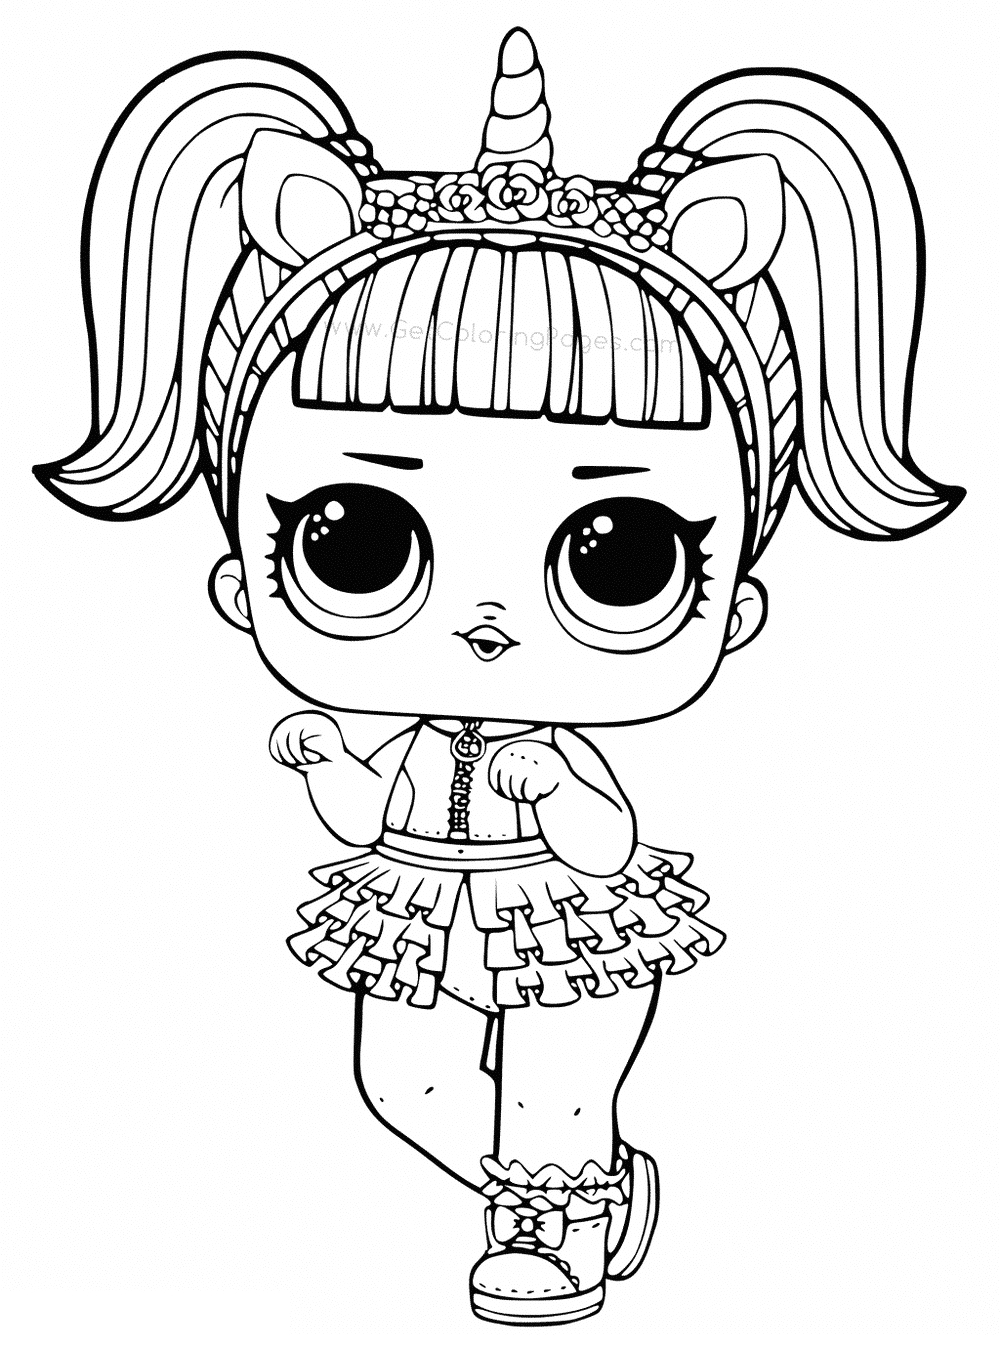 Lol Surprise Coloring Pages Black and White Coloring Pages Of Lol Surprise Dolls 80 Pieces Of Black